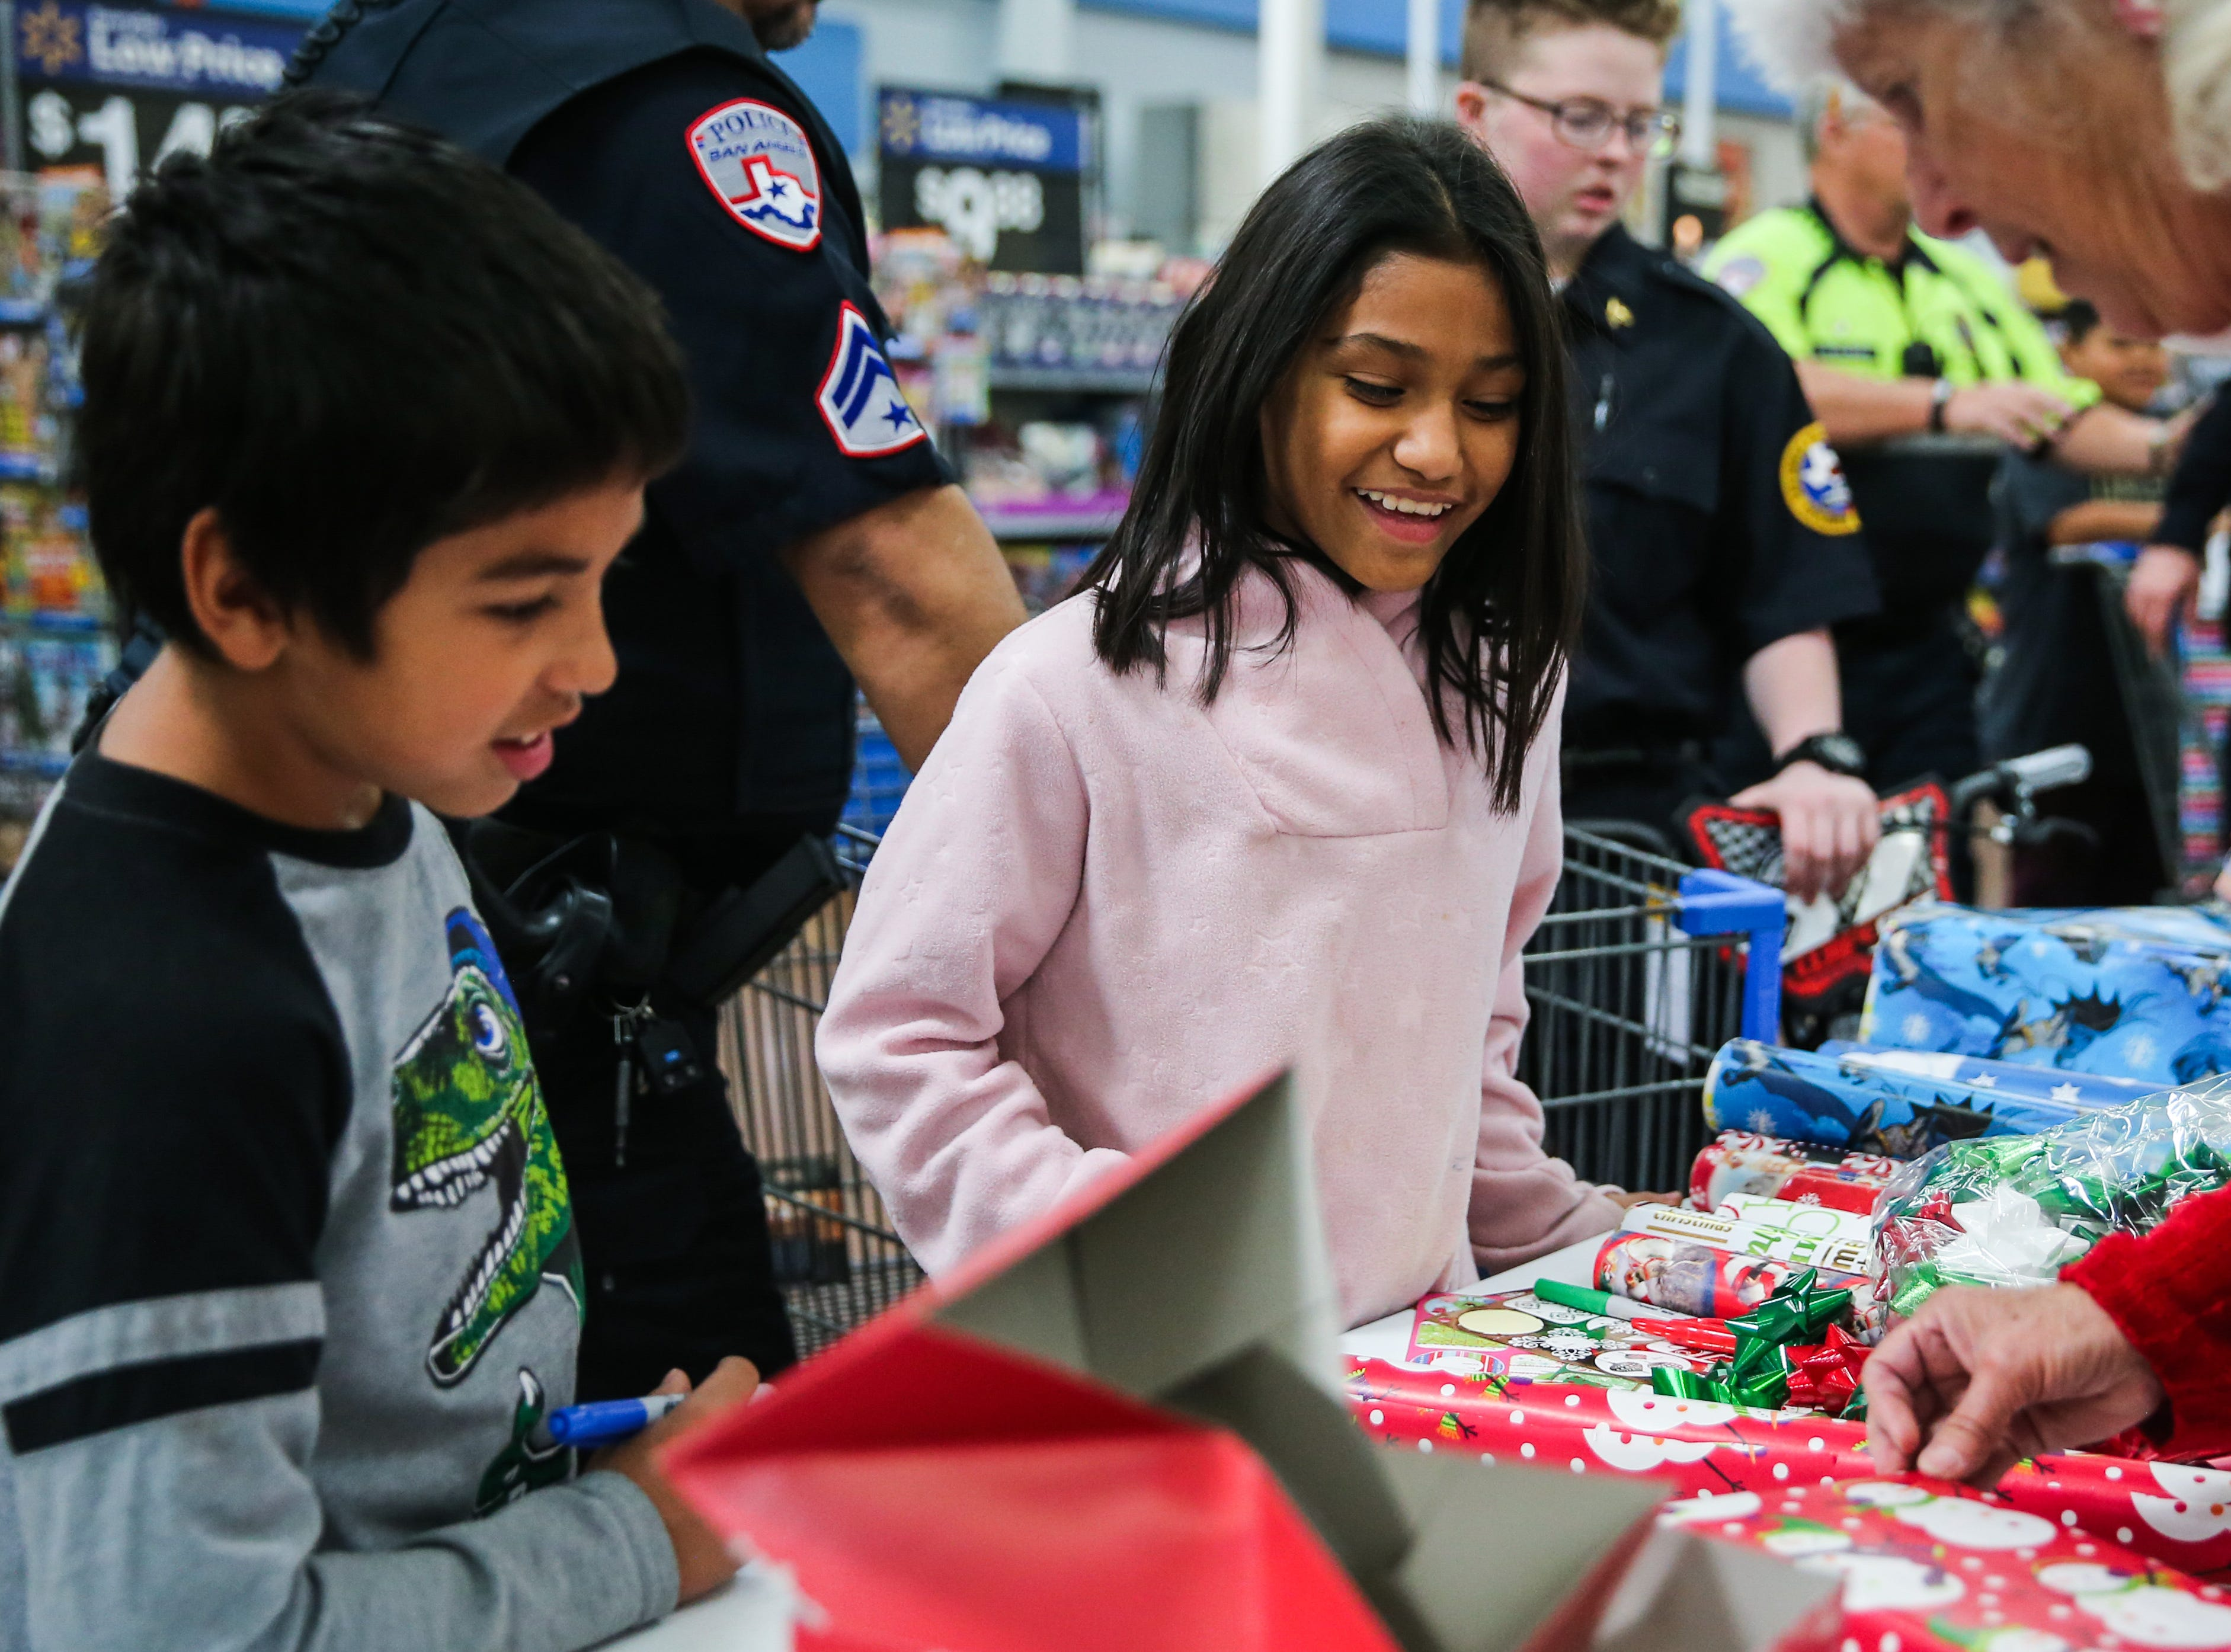 Bradley Borders, 9, and Eva Lopez, 10, pick wrapping paper for gifts they picked during Shop with a Cop event Saturday, Dec. 15, 2018, at Walmart.